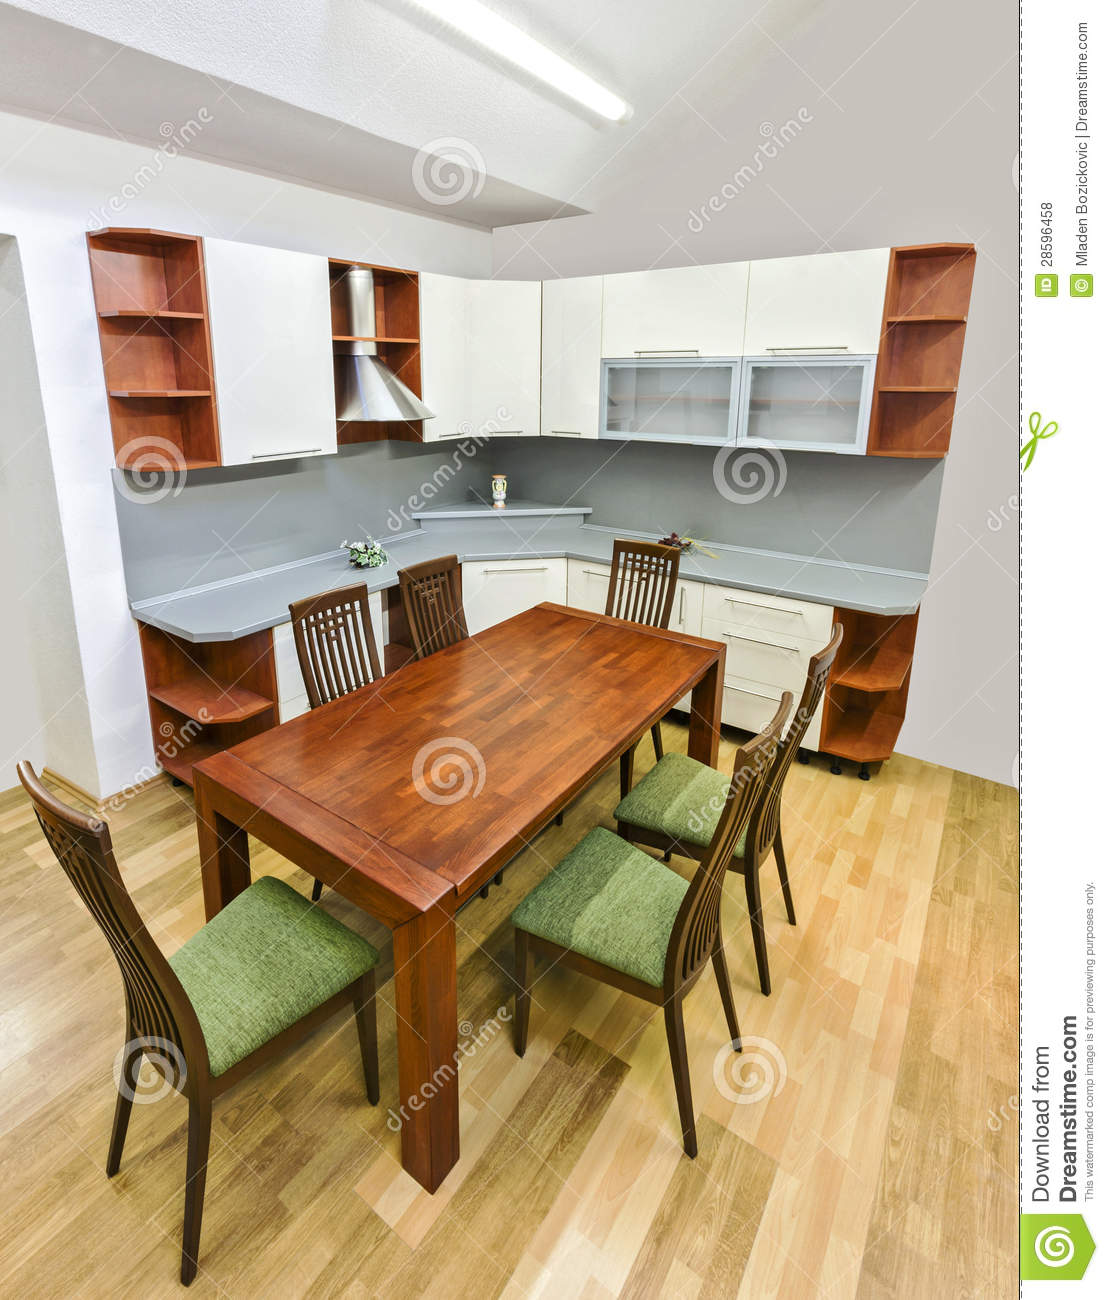 Kitchen With Table And Chairs Stock Photo Image Of Chairs Home 28596458